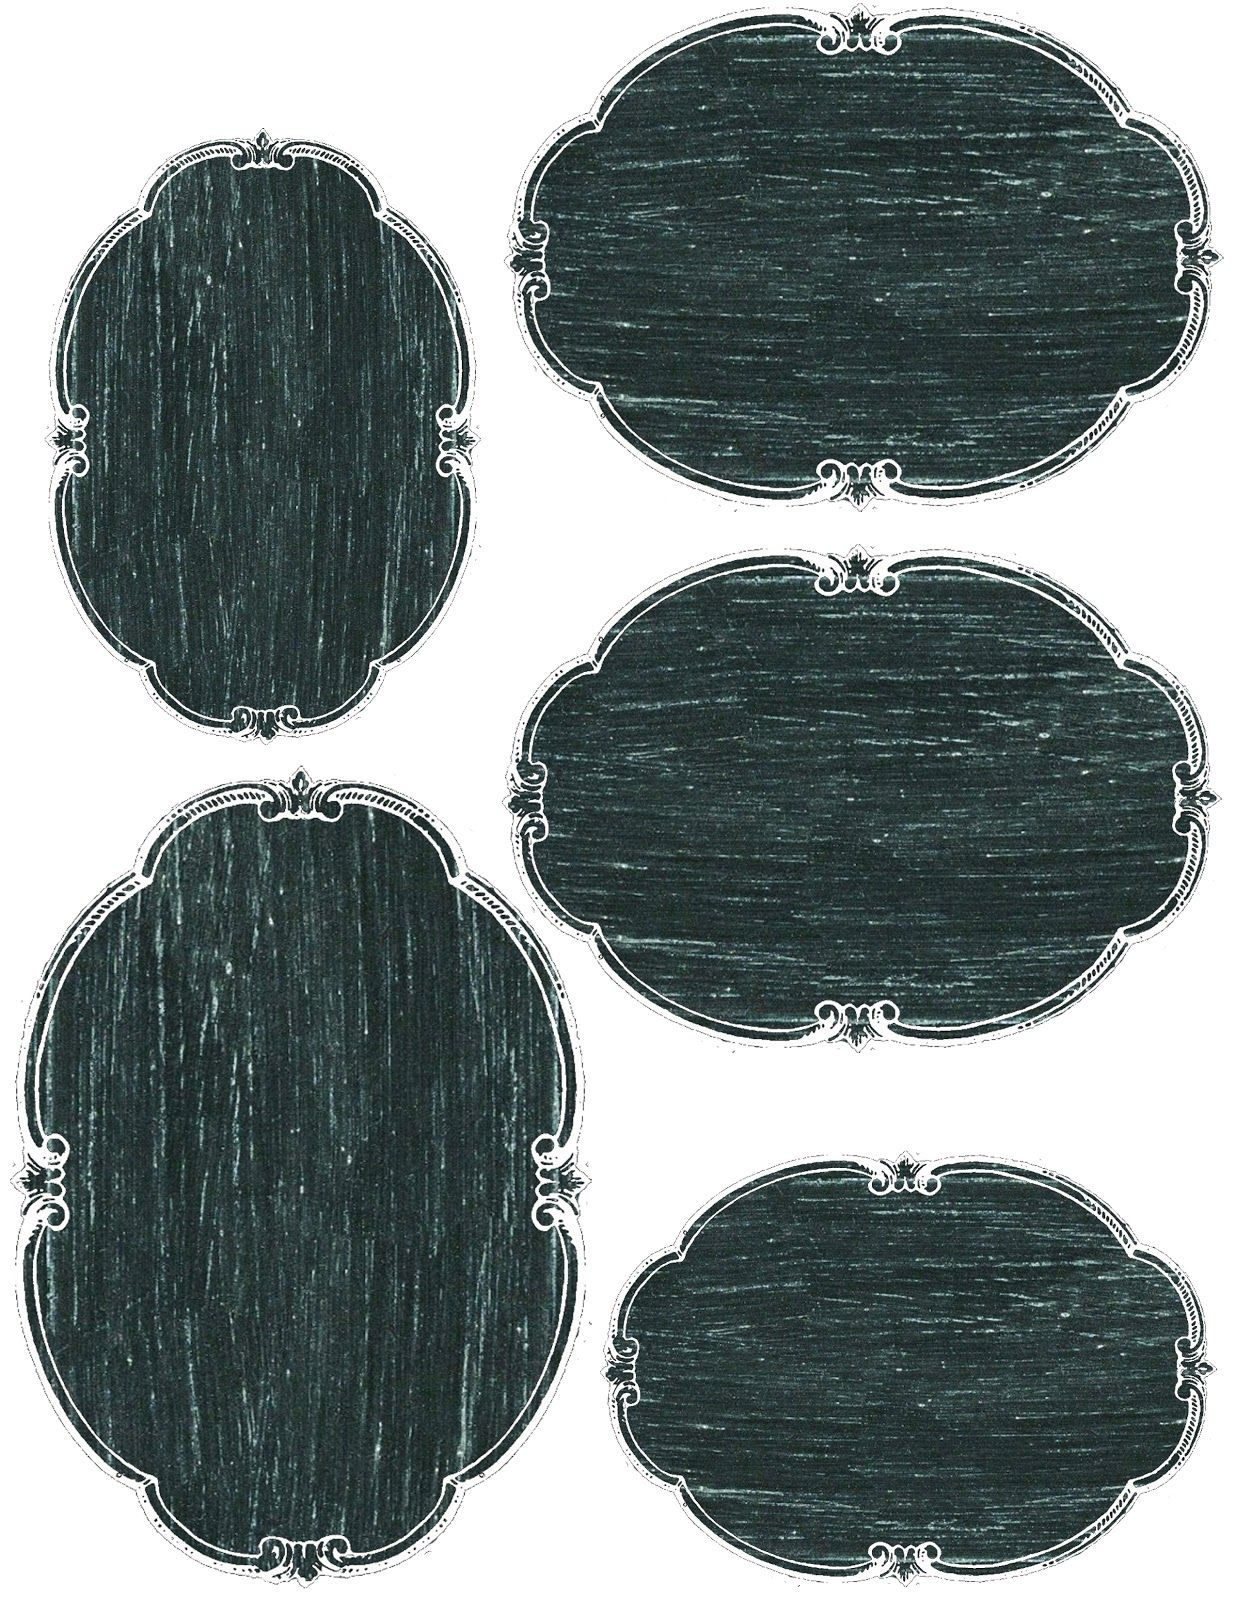 photo about Free Printable Chalkboard Labels titled Blank oval chalkboard labels (3 measurements) ~ no cost printable